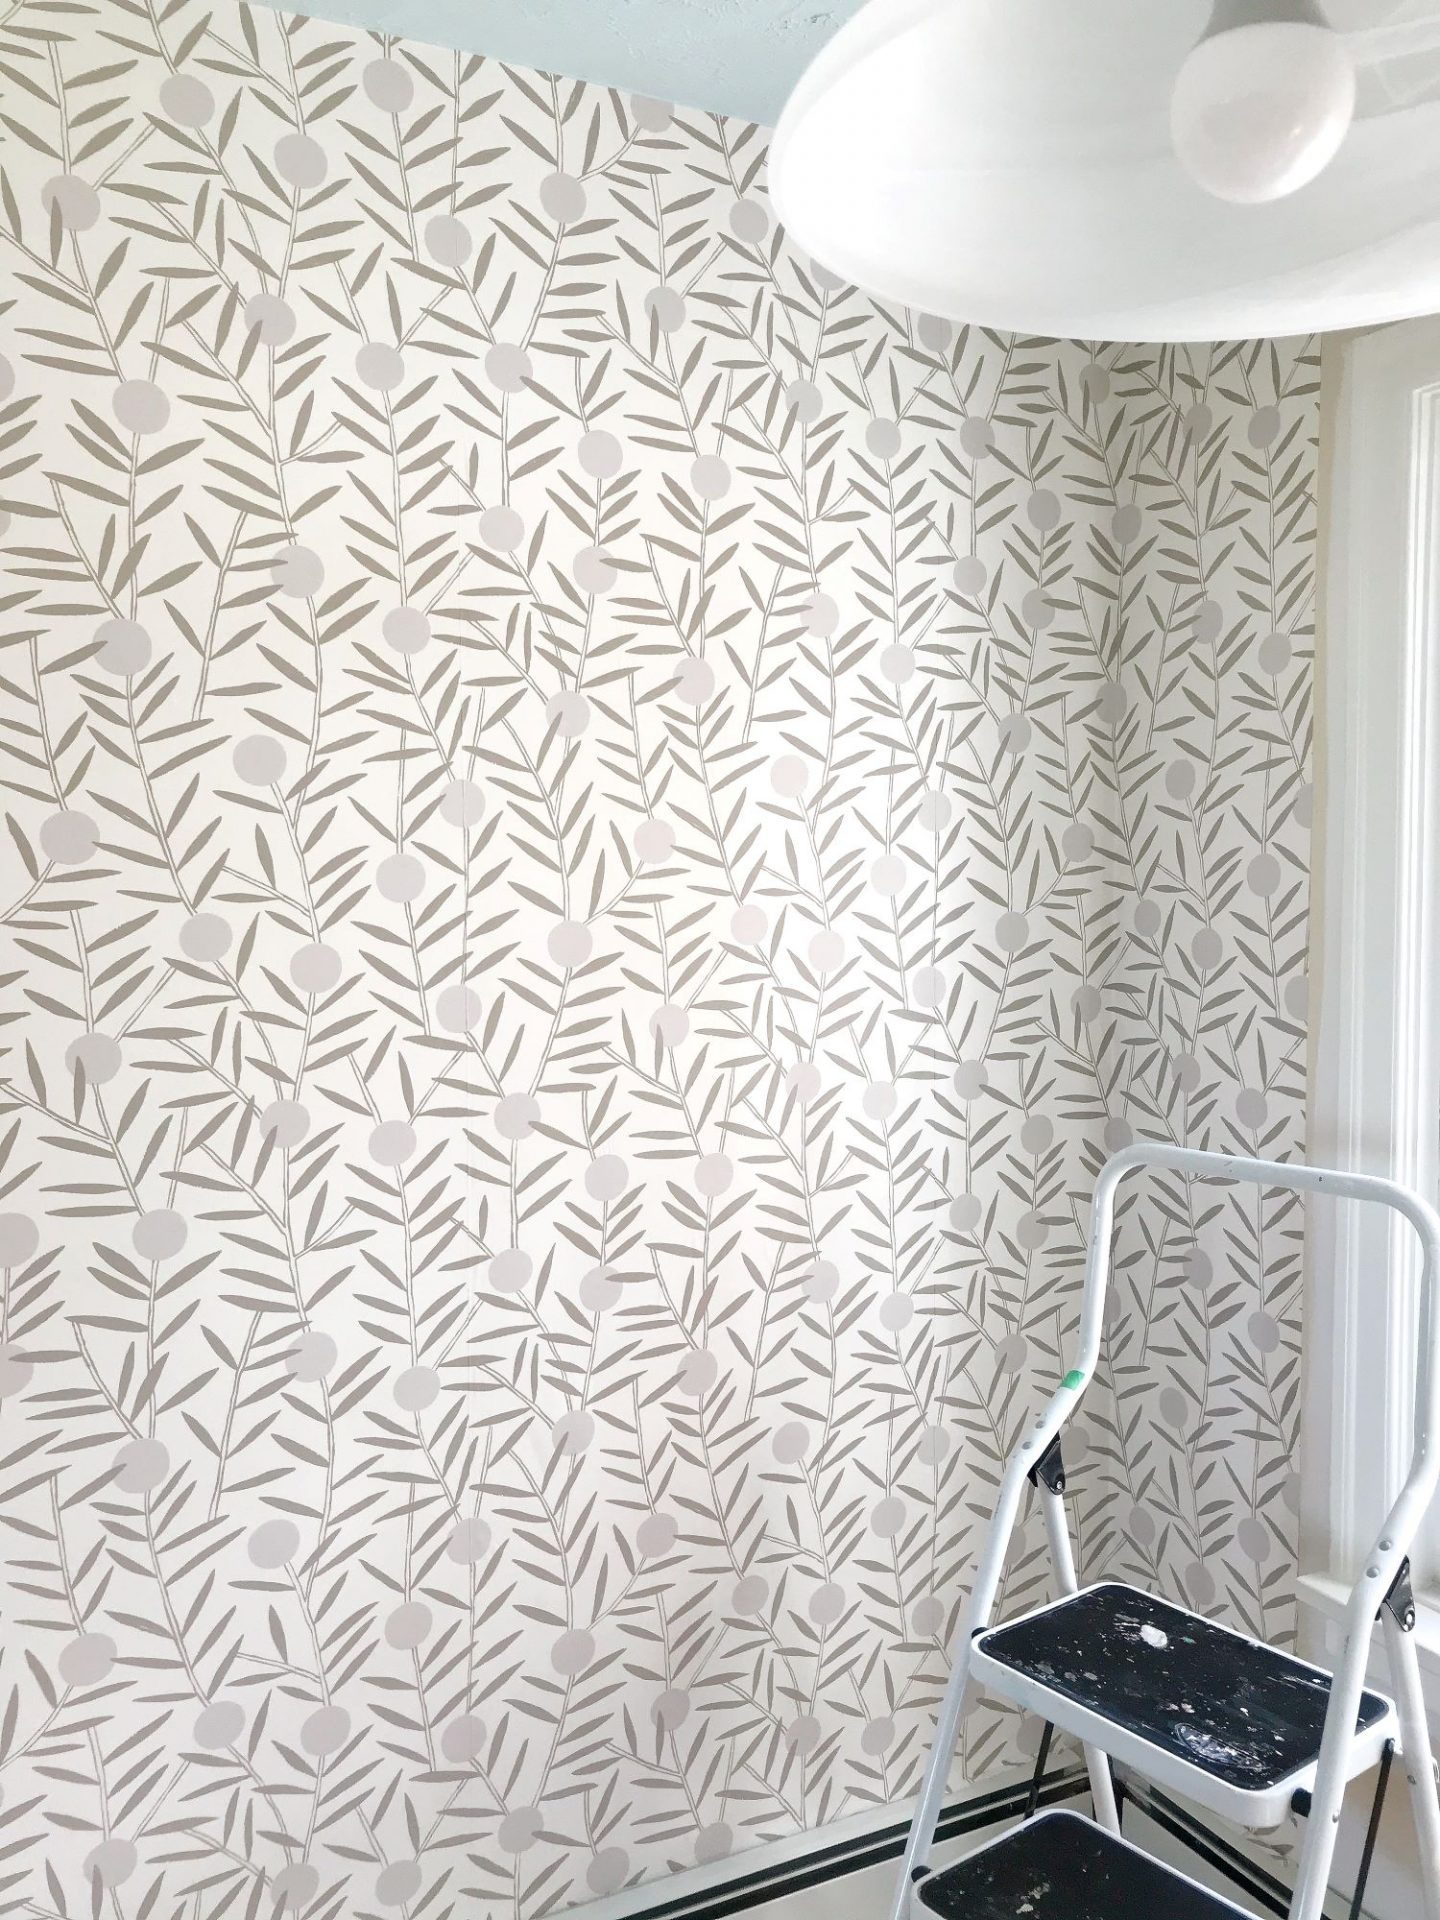 Non-Pasted Wallpaper DIY